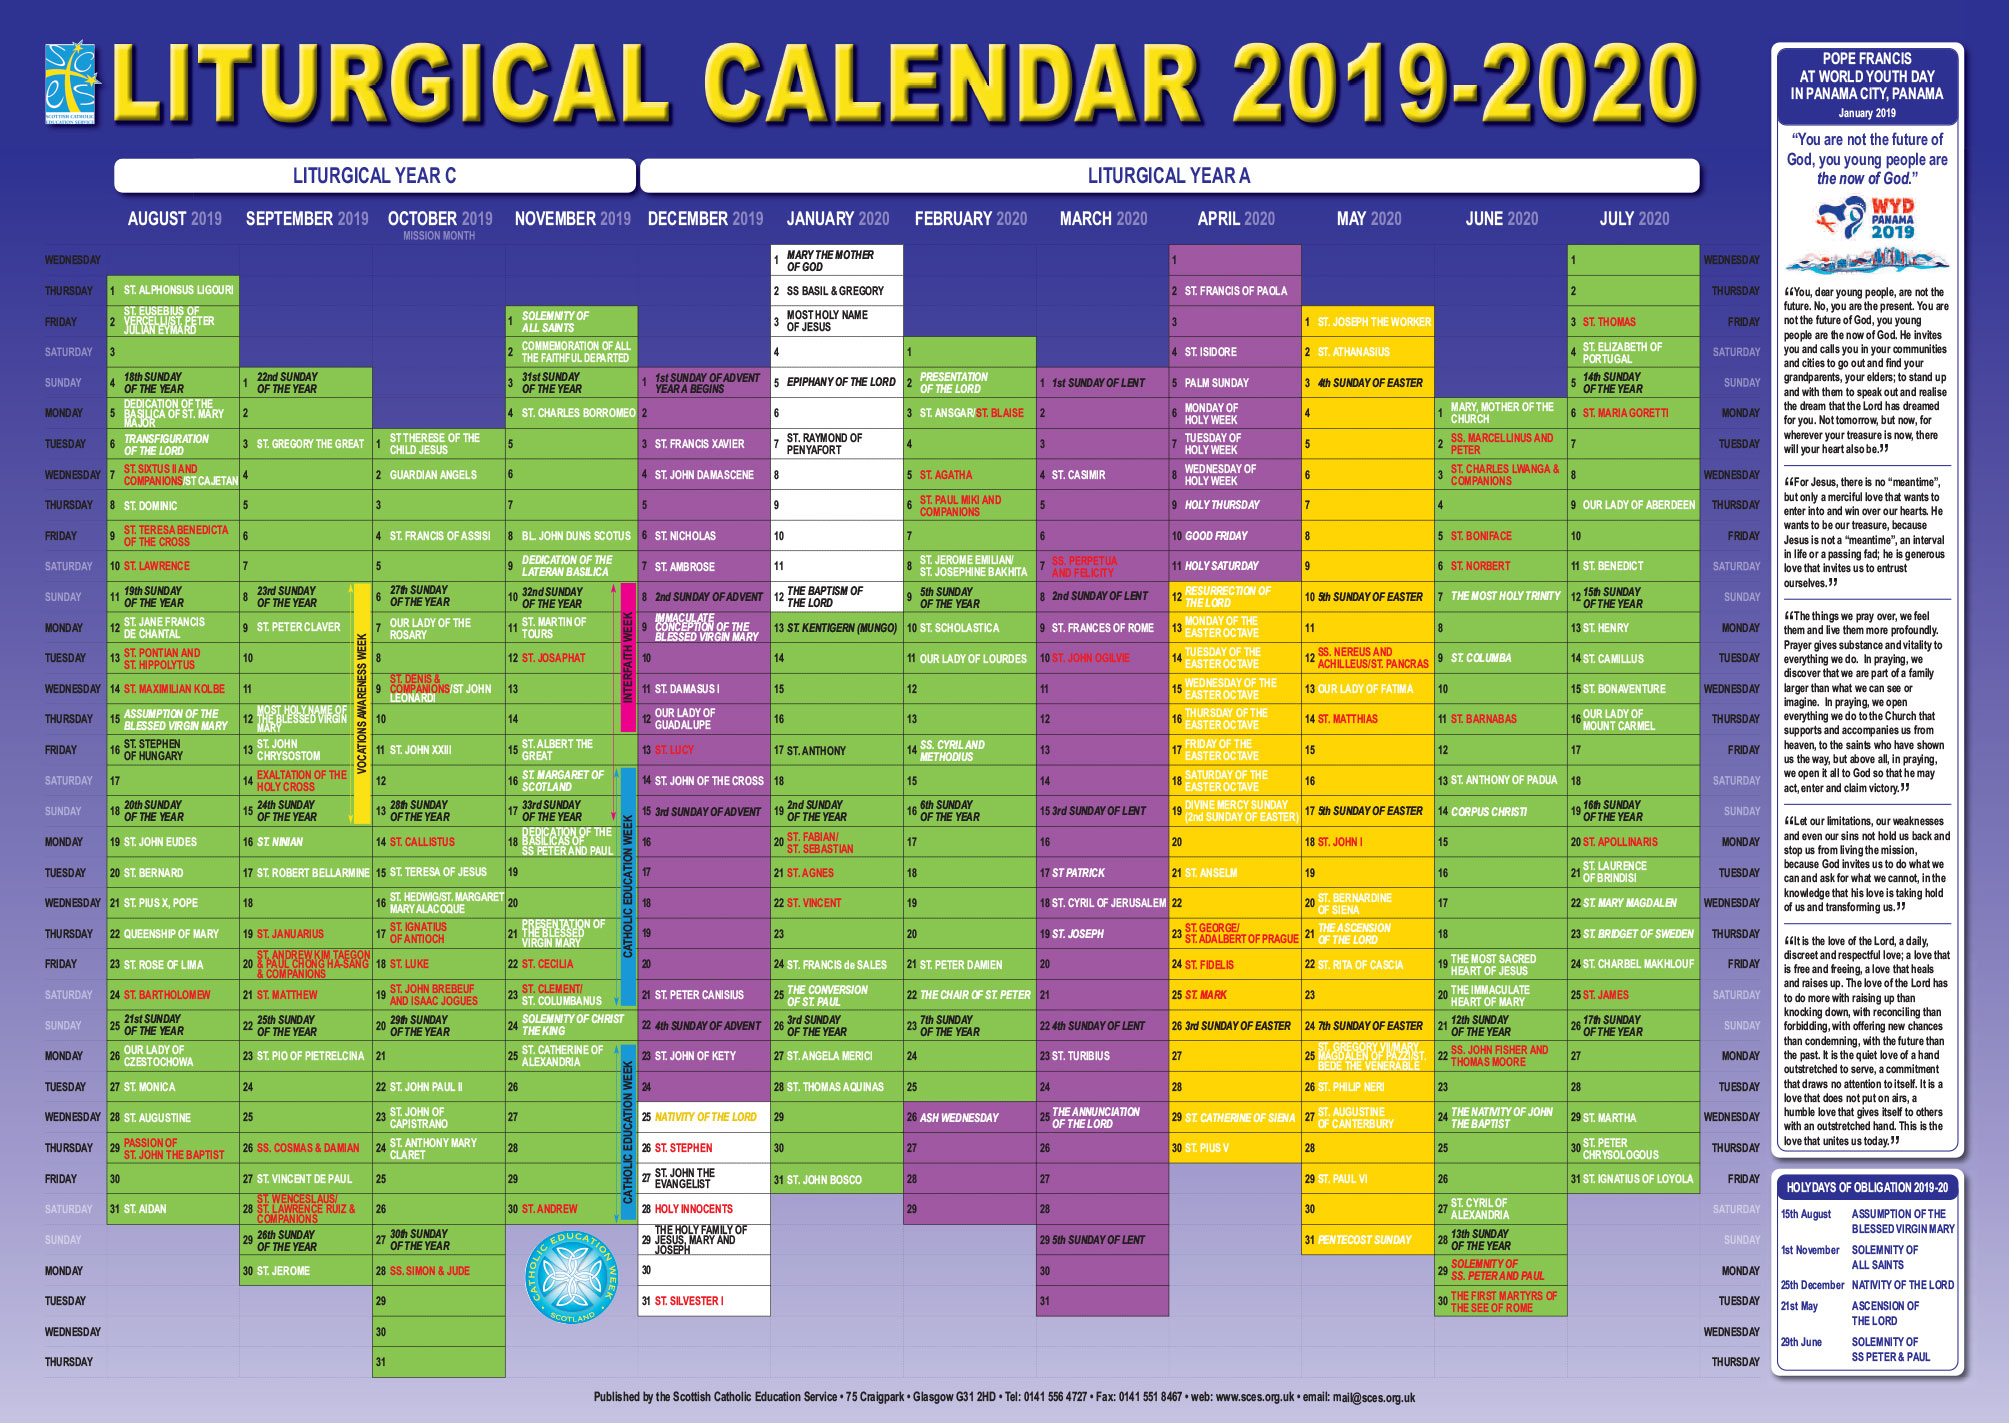 Scottish Catholic Education Service | Sces | Liturgical regarding Catholic Liturgy Calendar 2020